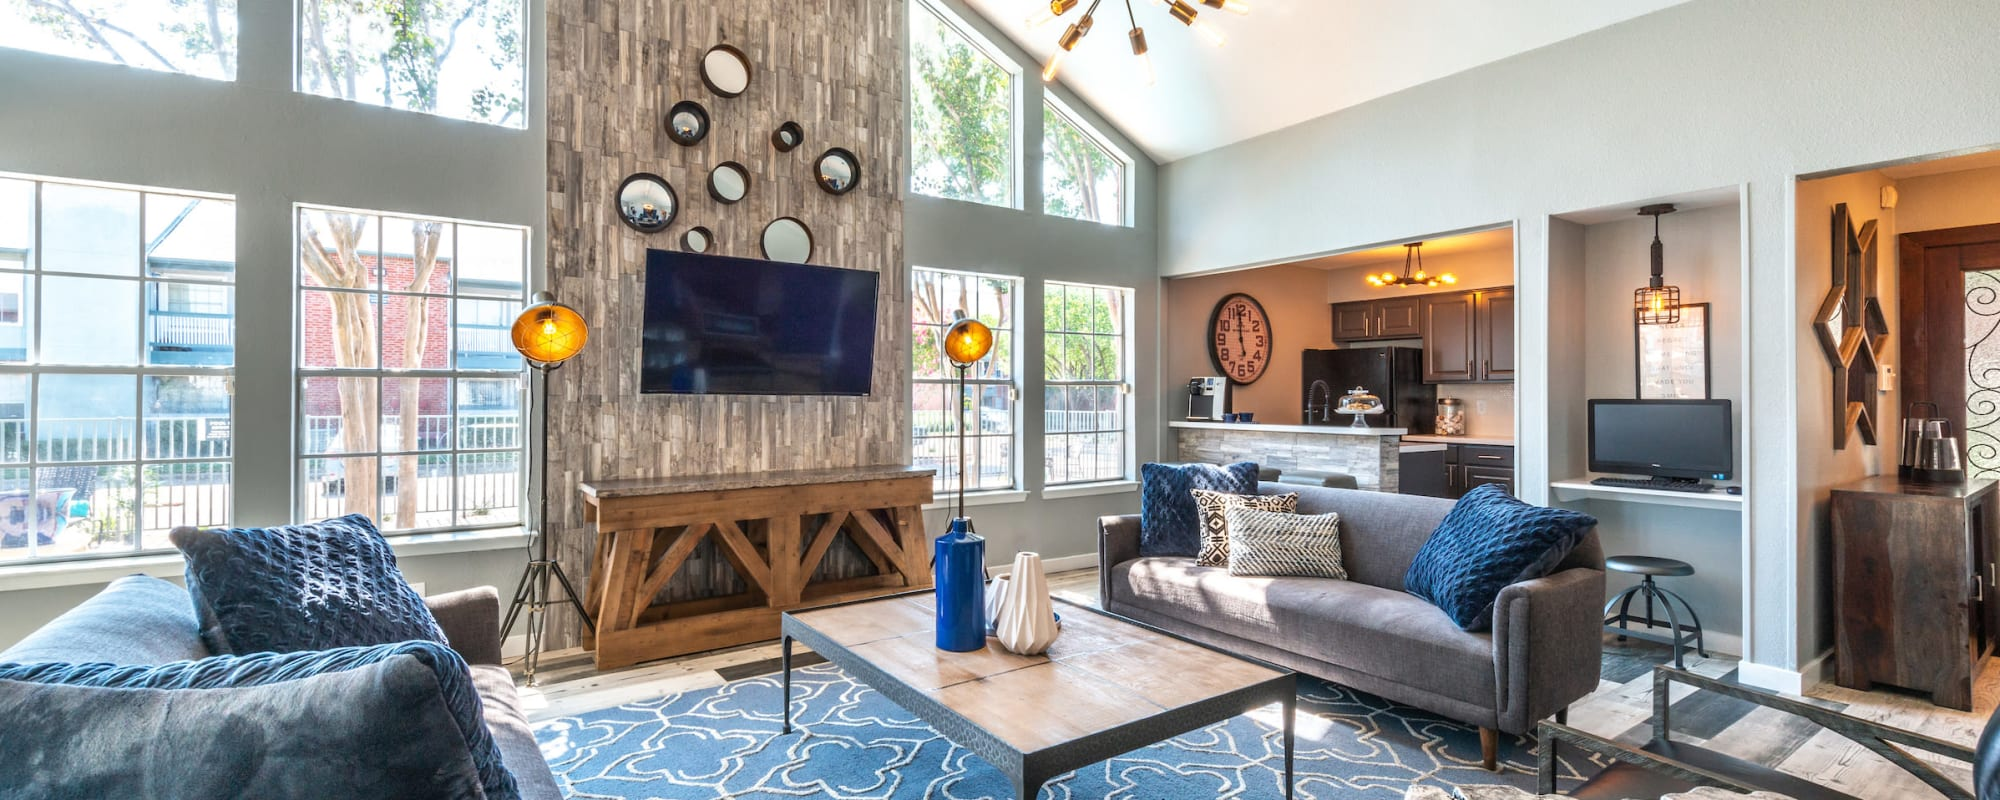 Photo gallery at Lane at Towne Crossing in Mesquite, Texas